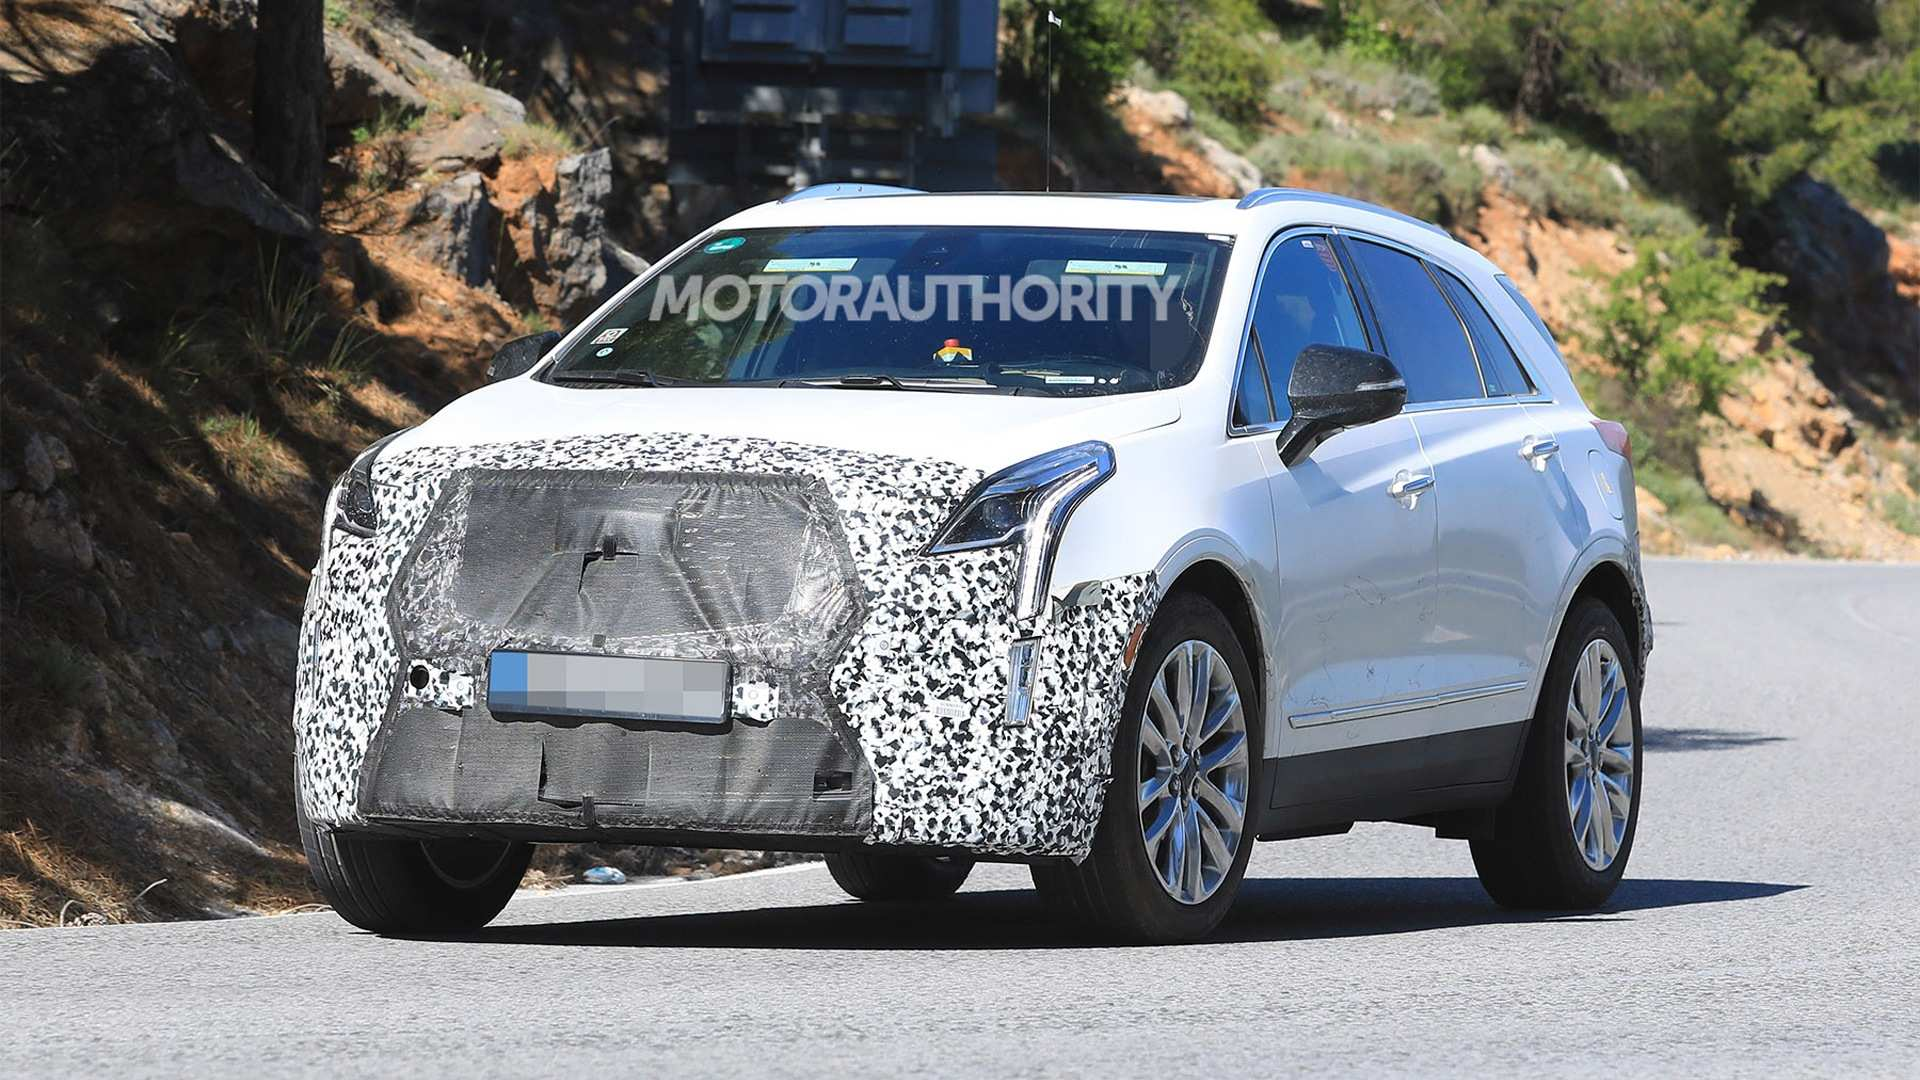 19 New 2020 Cadillac SRXSpy Photos History by 2020 Cadillac SRXSpy Photos